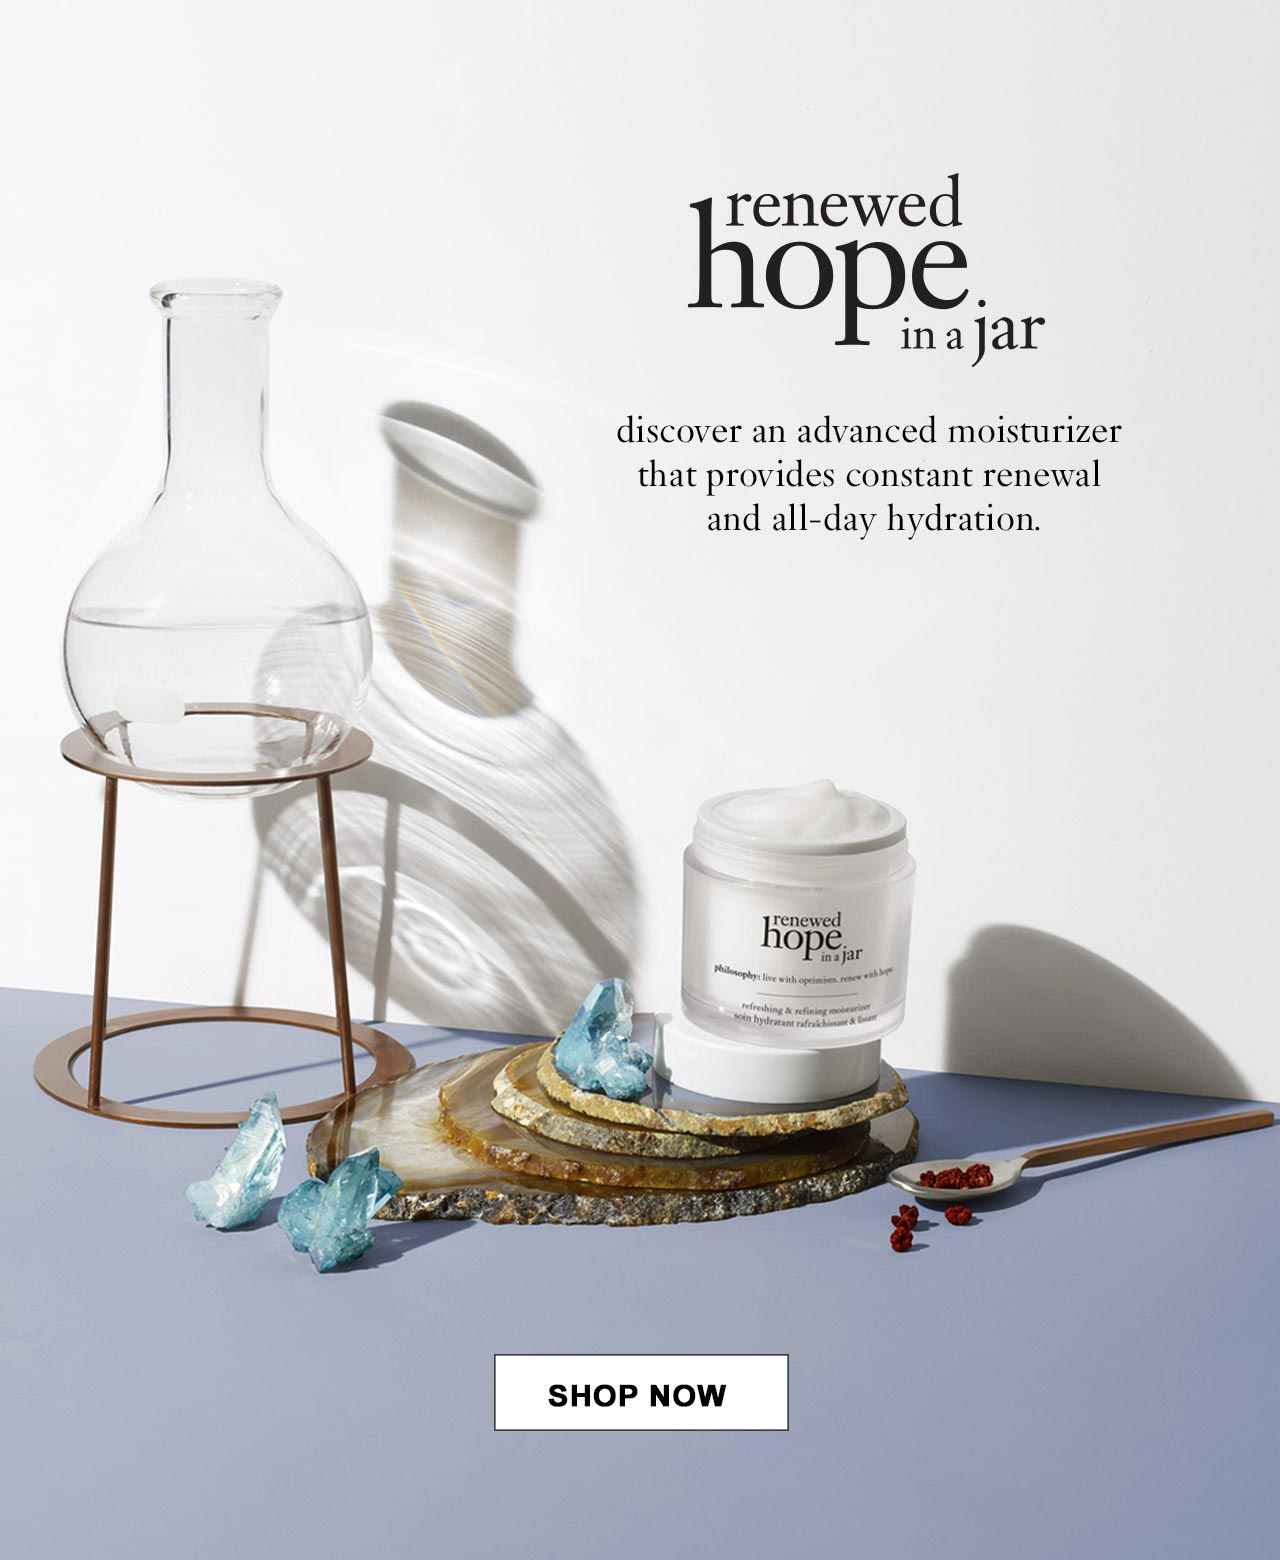 Renewed hope in a jar. Discover an advanced moisturizer that provides constant renewal and all-day hydration. Shop n0w